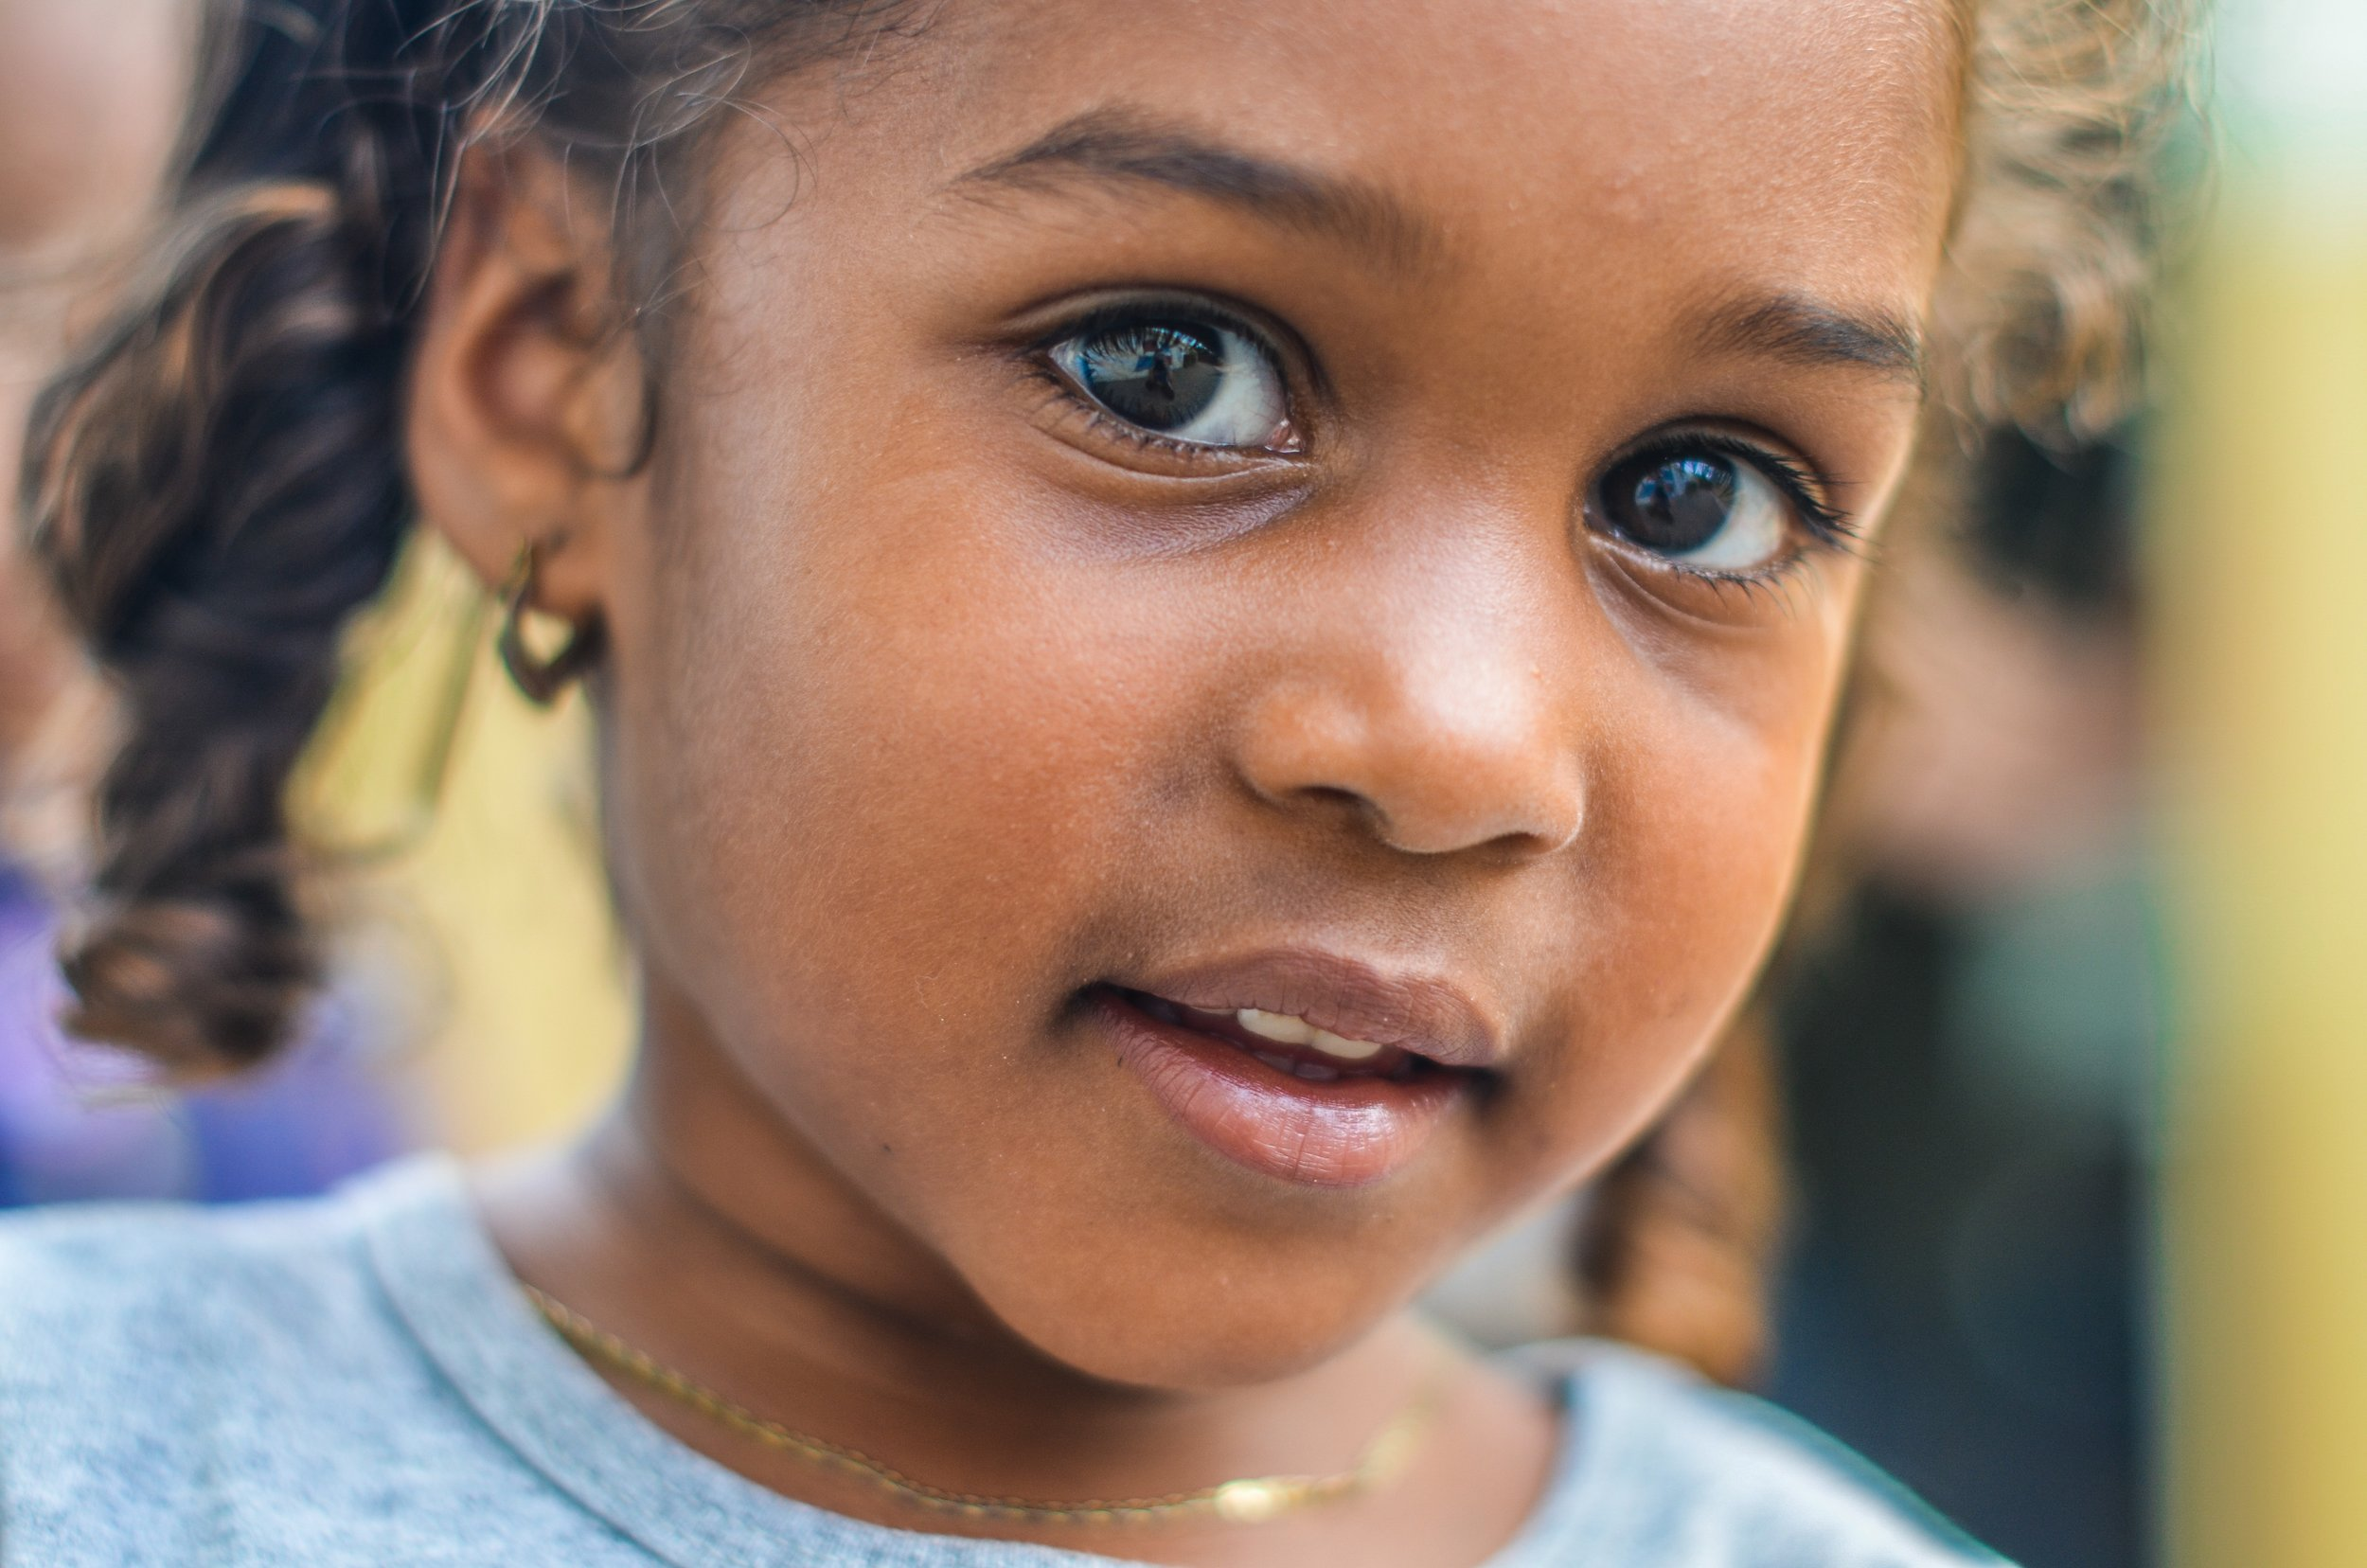 toddler girl with pretty brown eyes  blue shirt michael mims Up cW.jpg